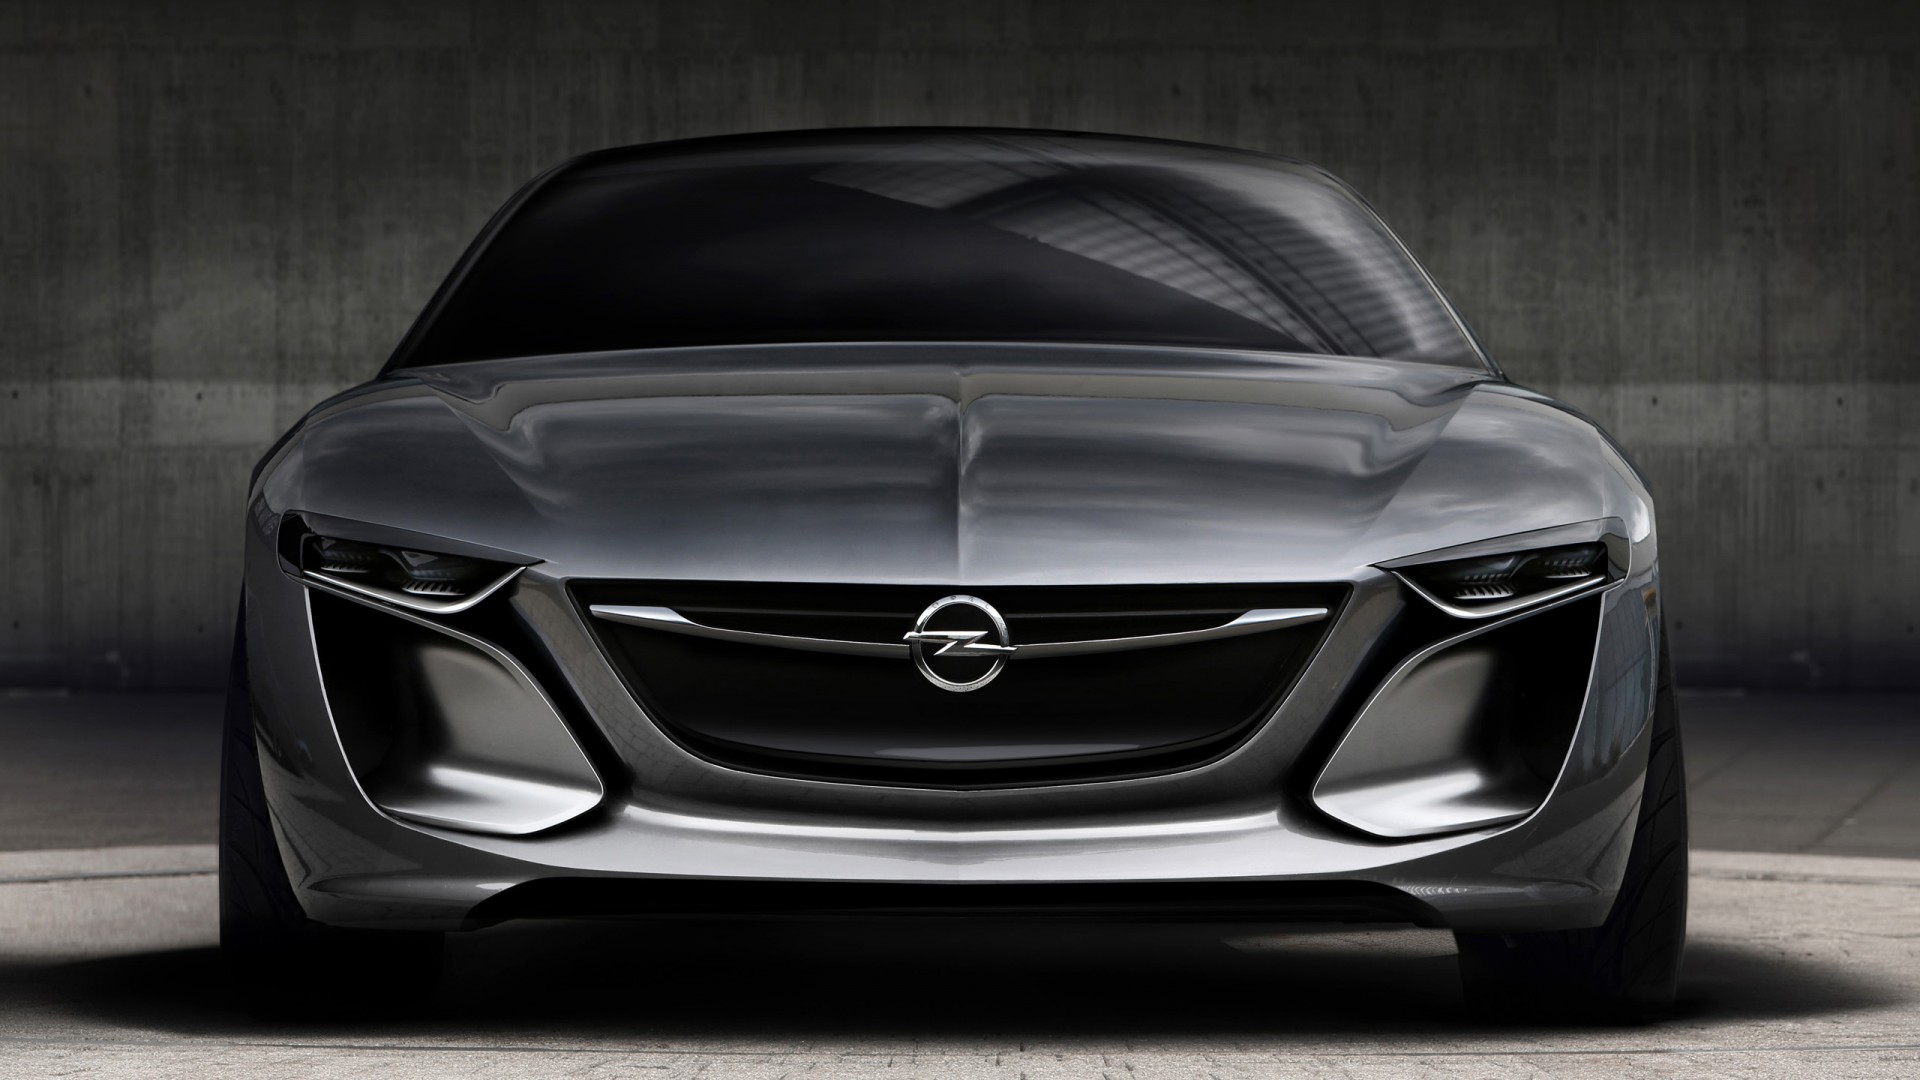 2013 opel monza concept 3 wallpaper hd car wallpapers. Black Bedroom Furniture Sets. Home Design Ideas